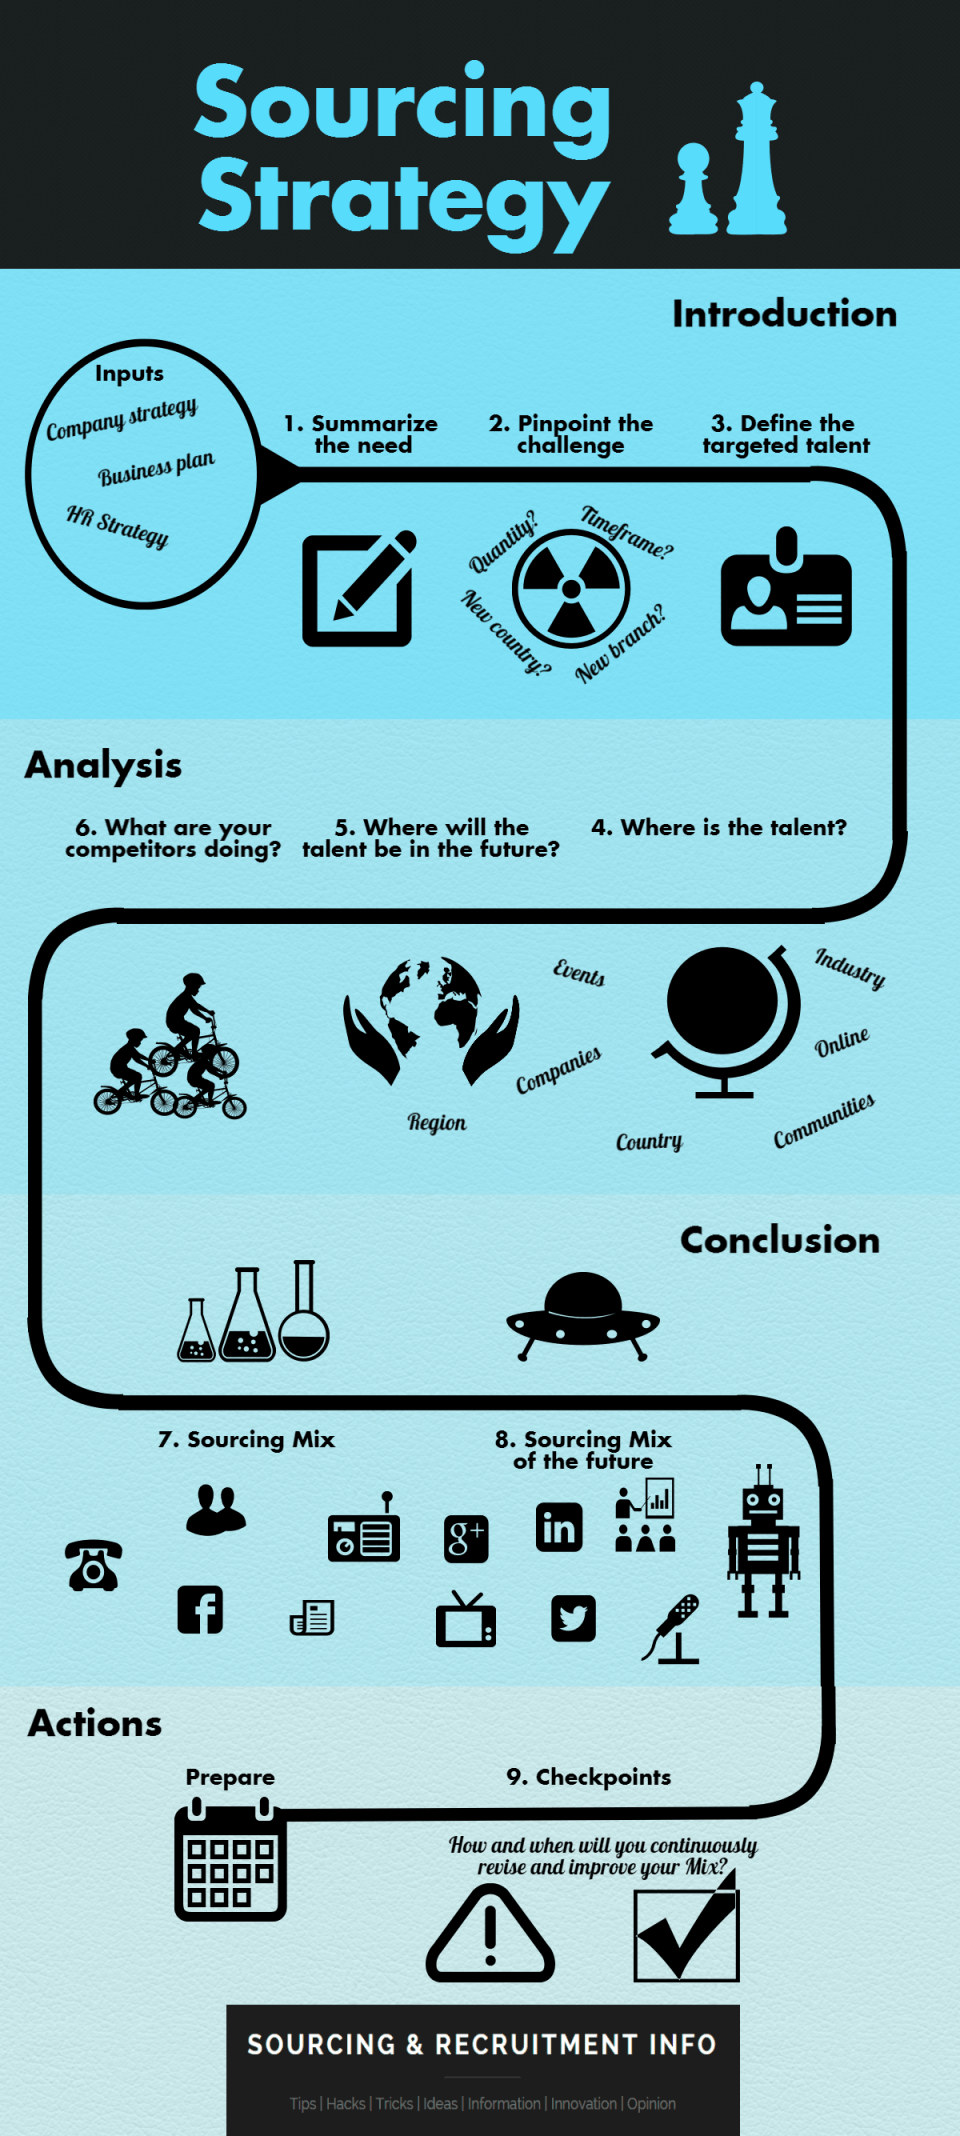 Sourcing-Strategy infographic